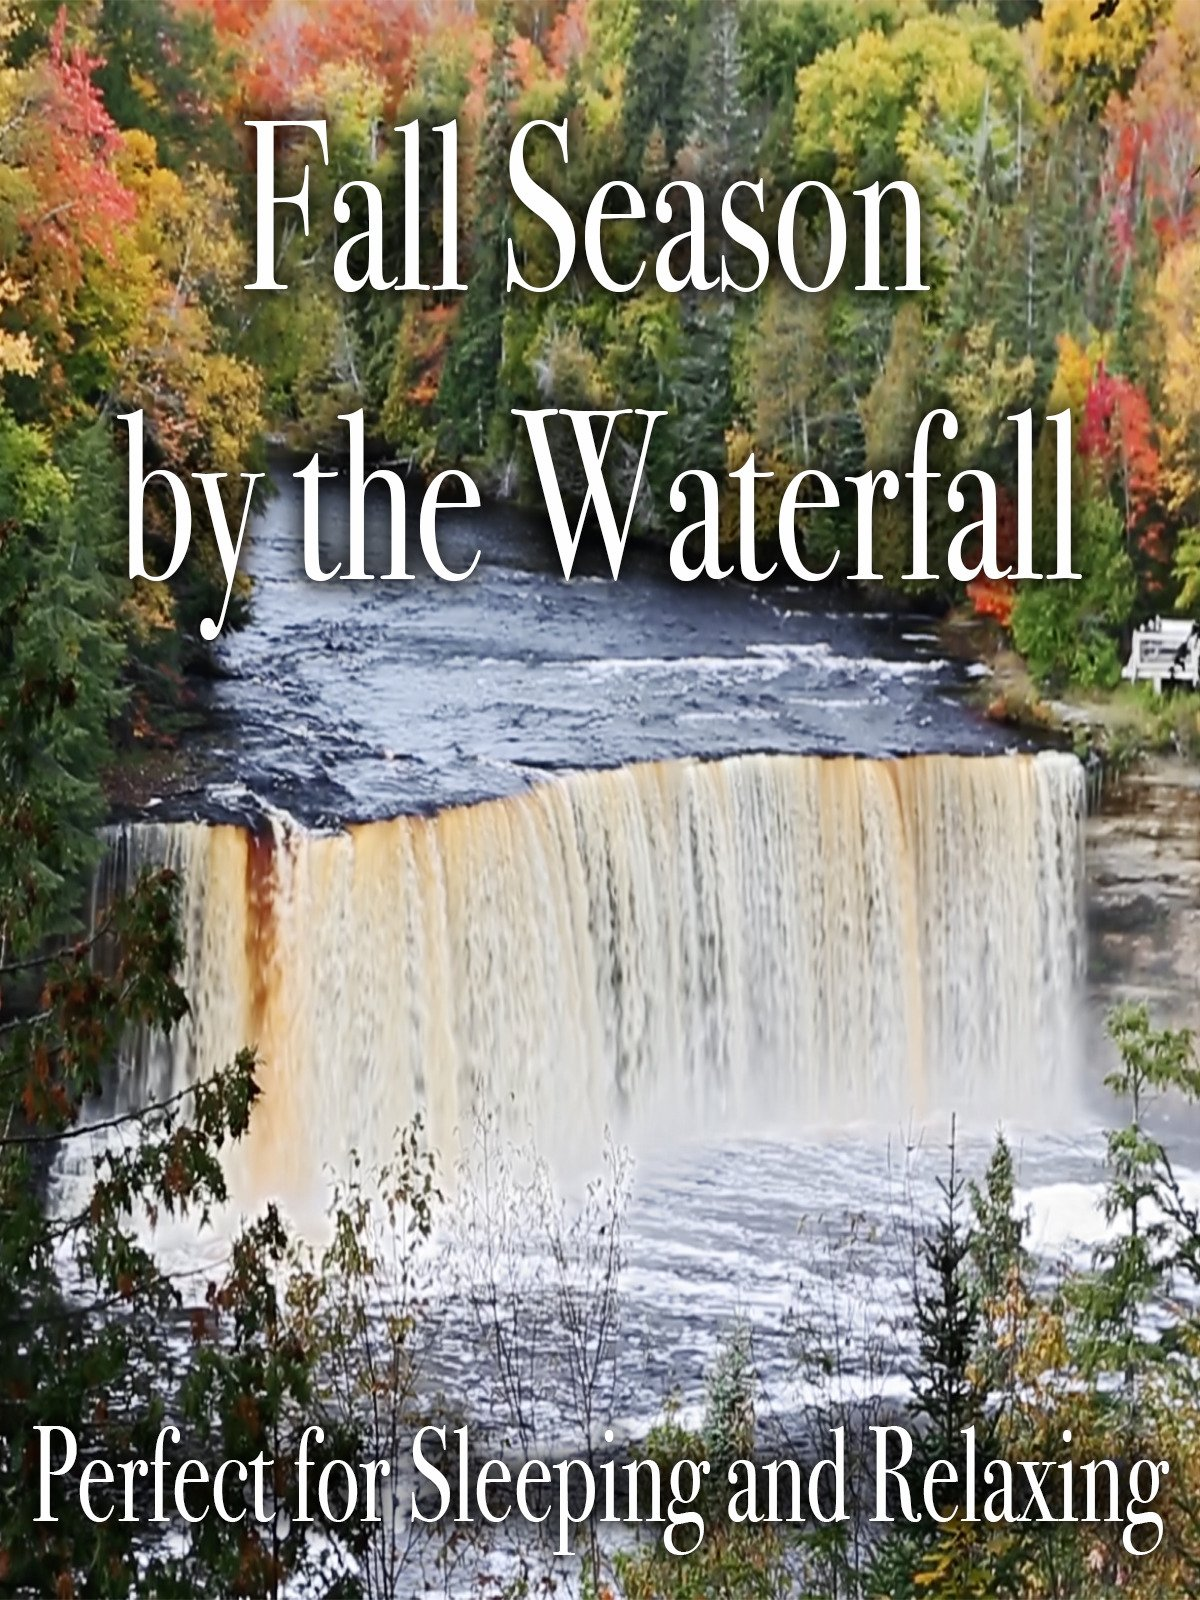 Fall Season by the Waterfall Perfect for Sleeping and Relaxing